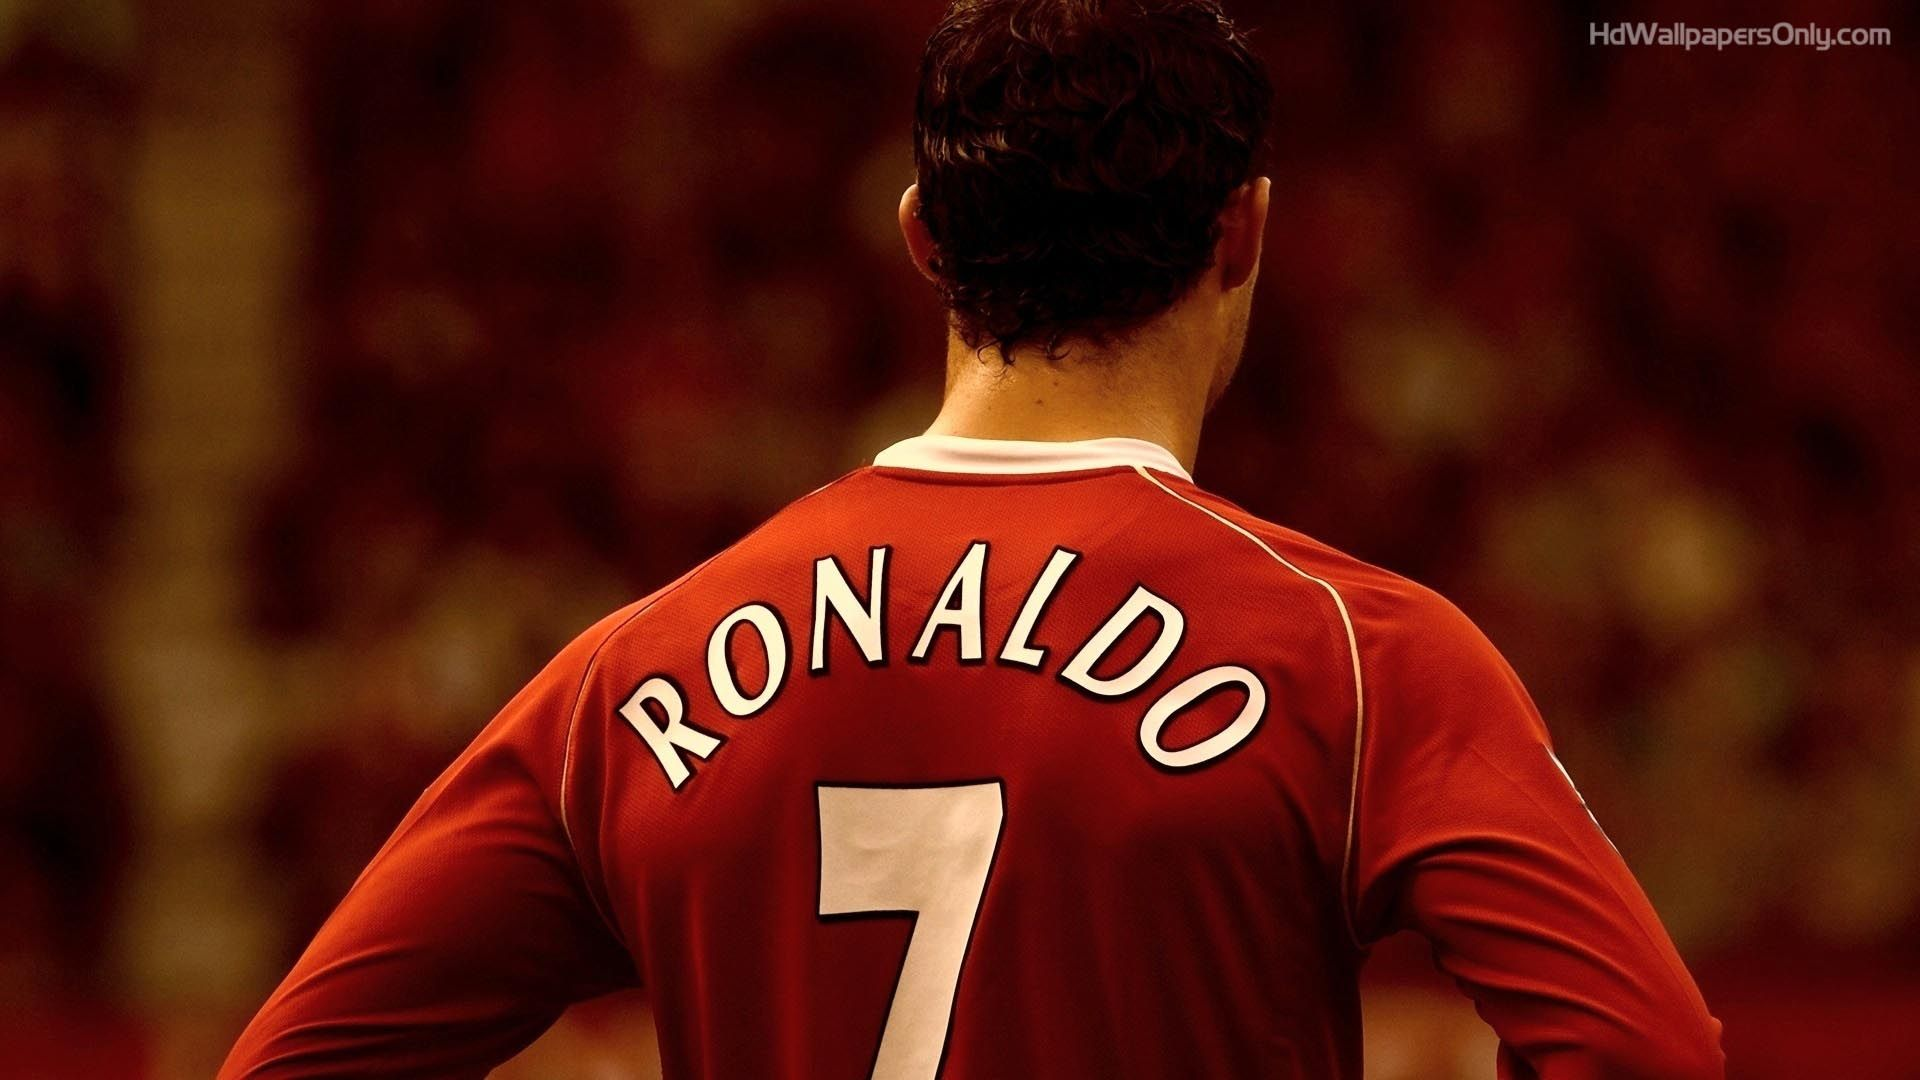 Pin By Kailash Neel On Other That I Love Cristiano Ronaldo Ronaldo Cristiano Ronaldo Hd Wallpapers